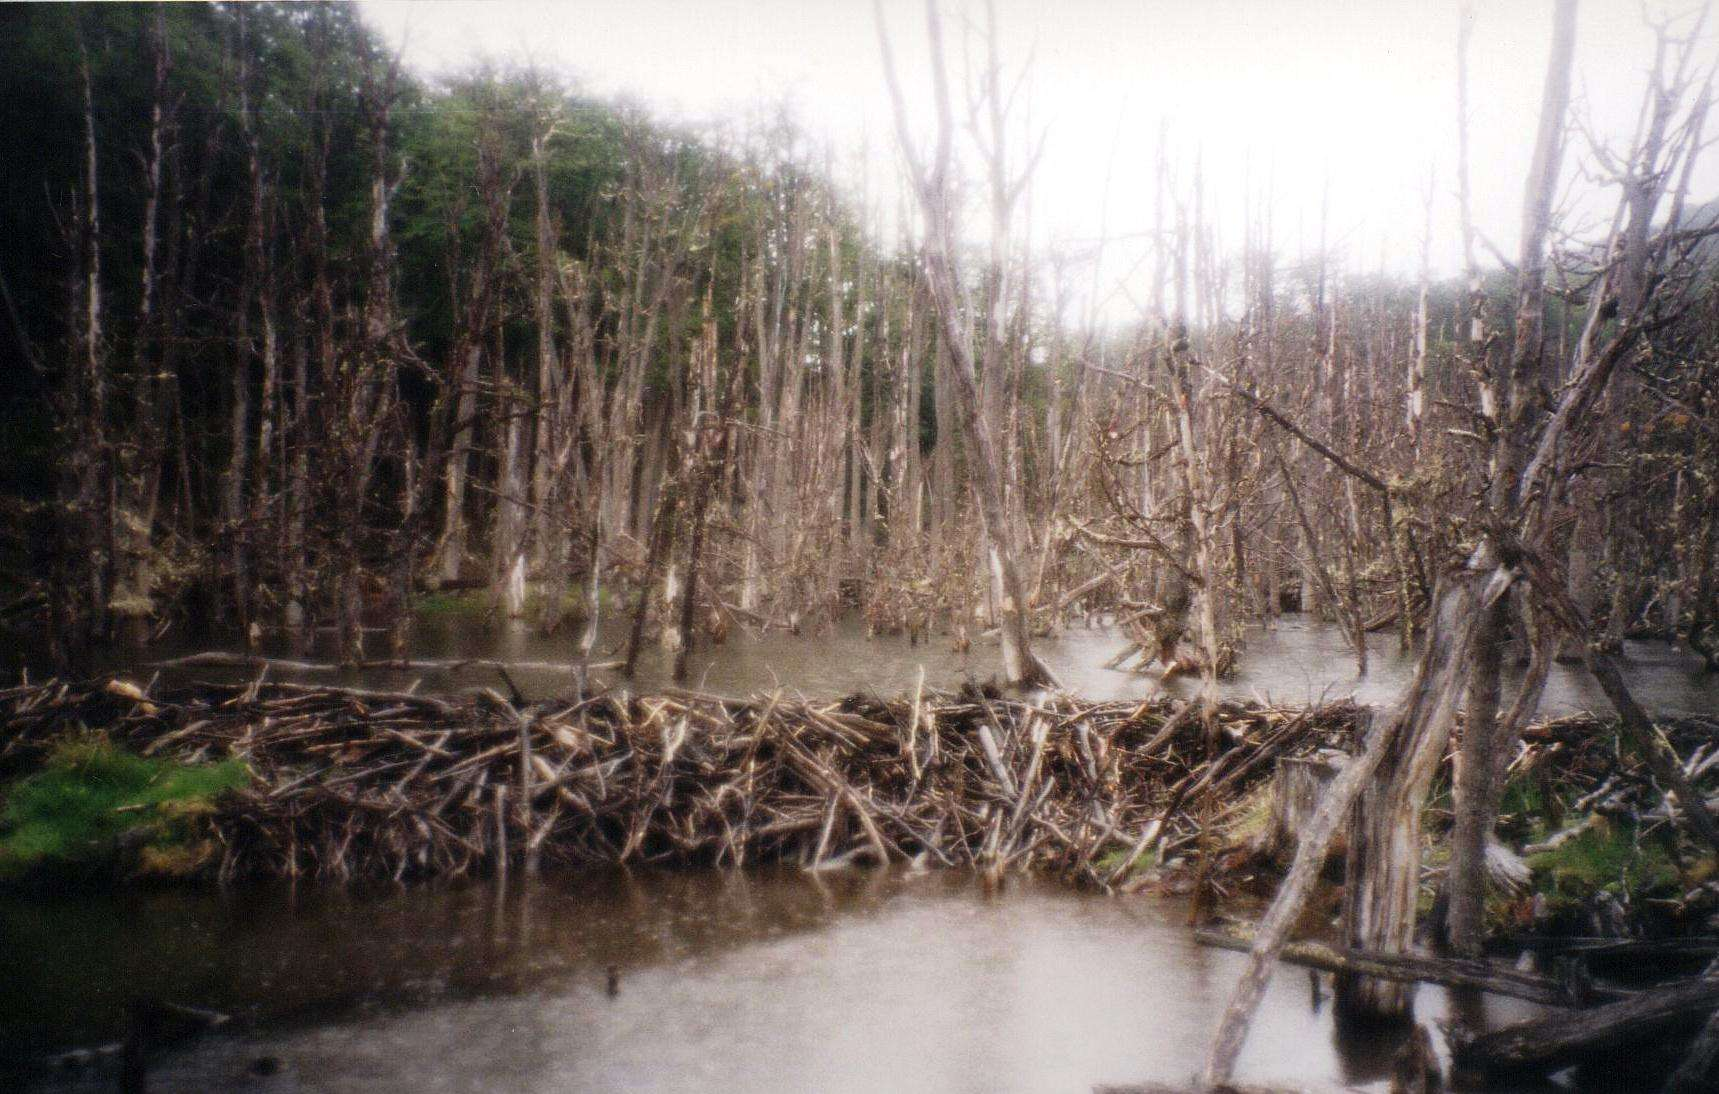 beaver dam 2 travel satire  photo image